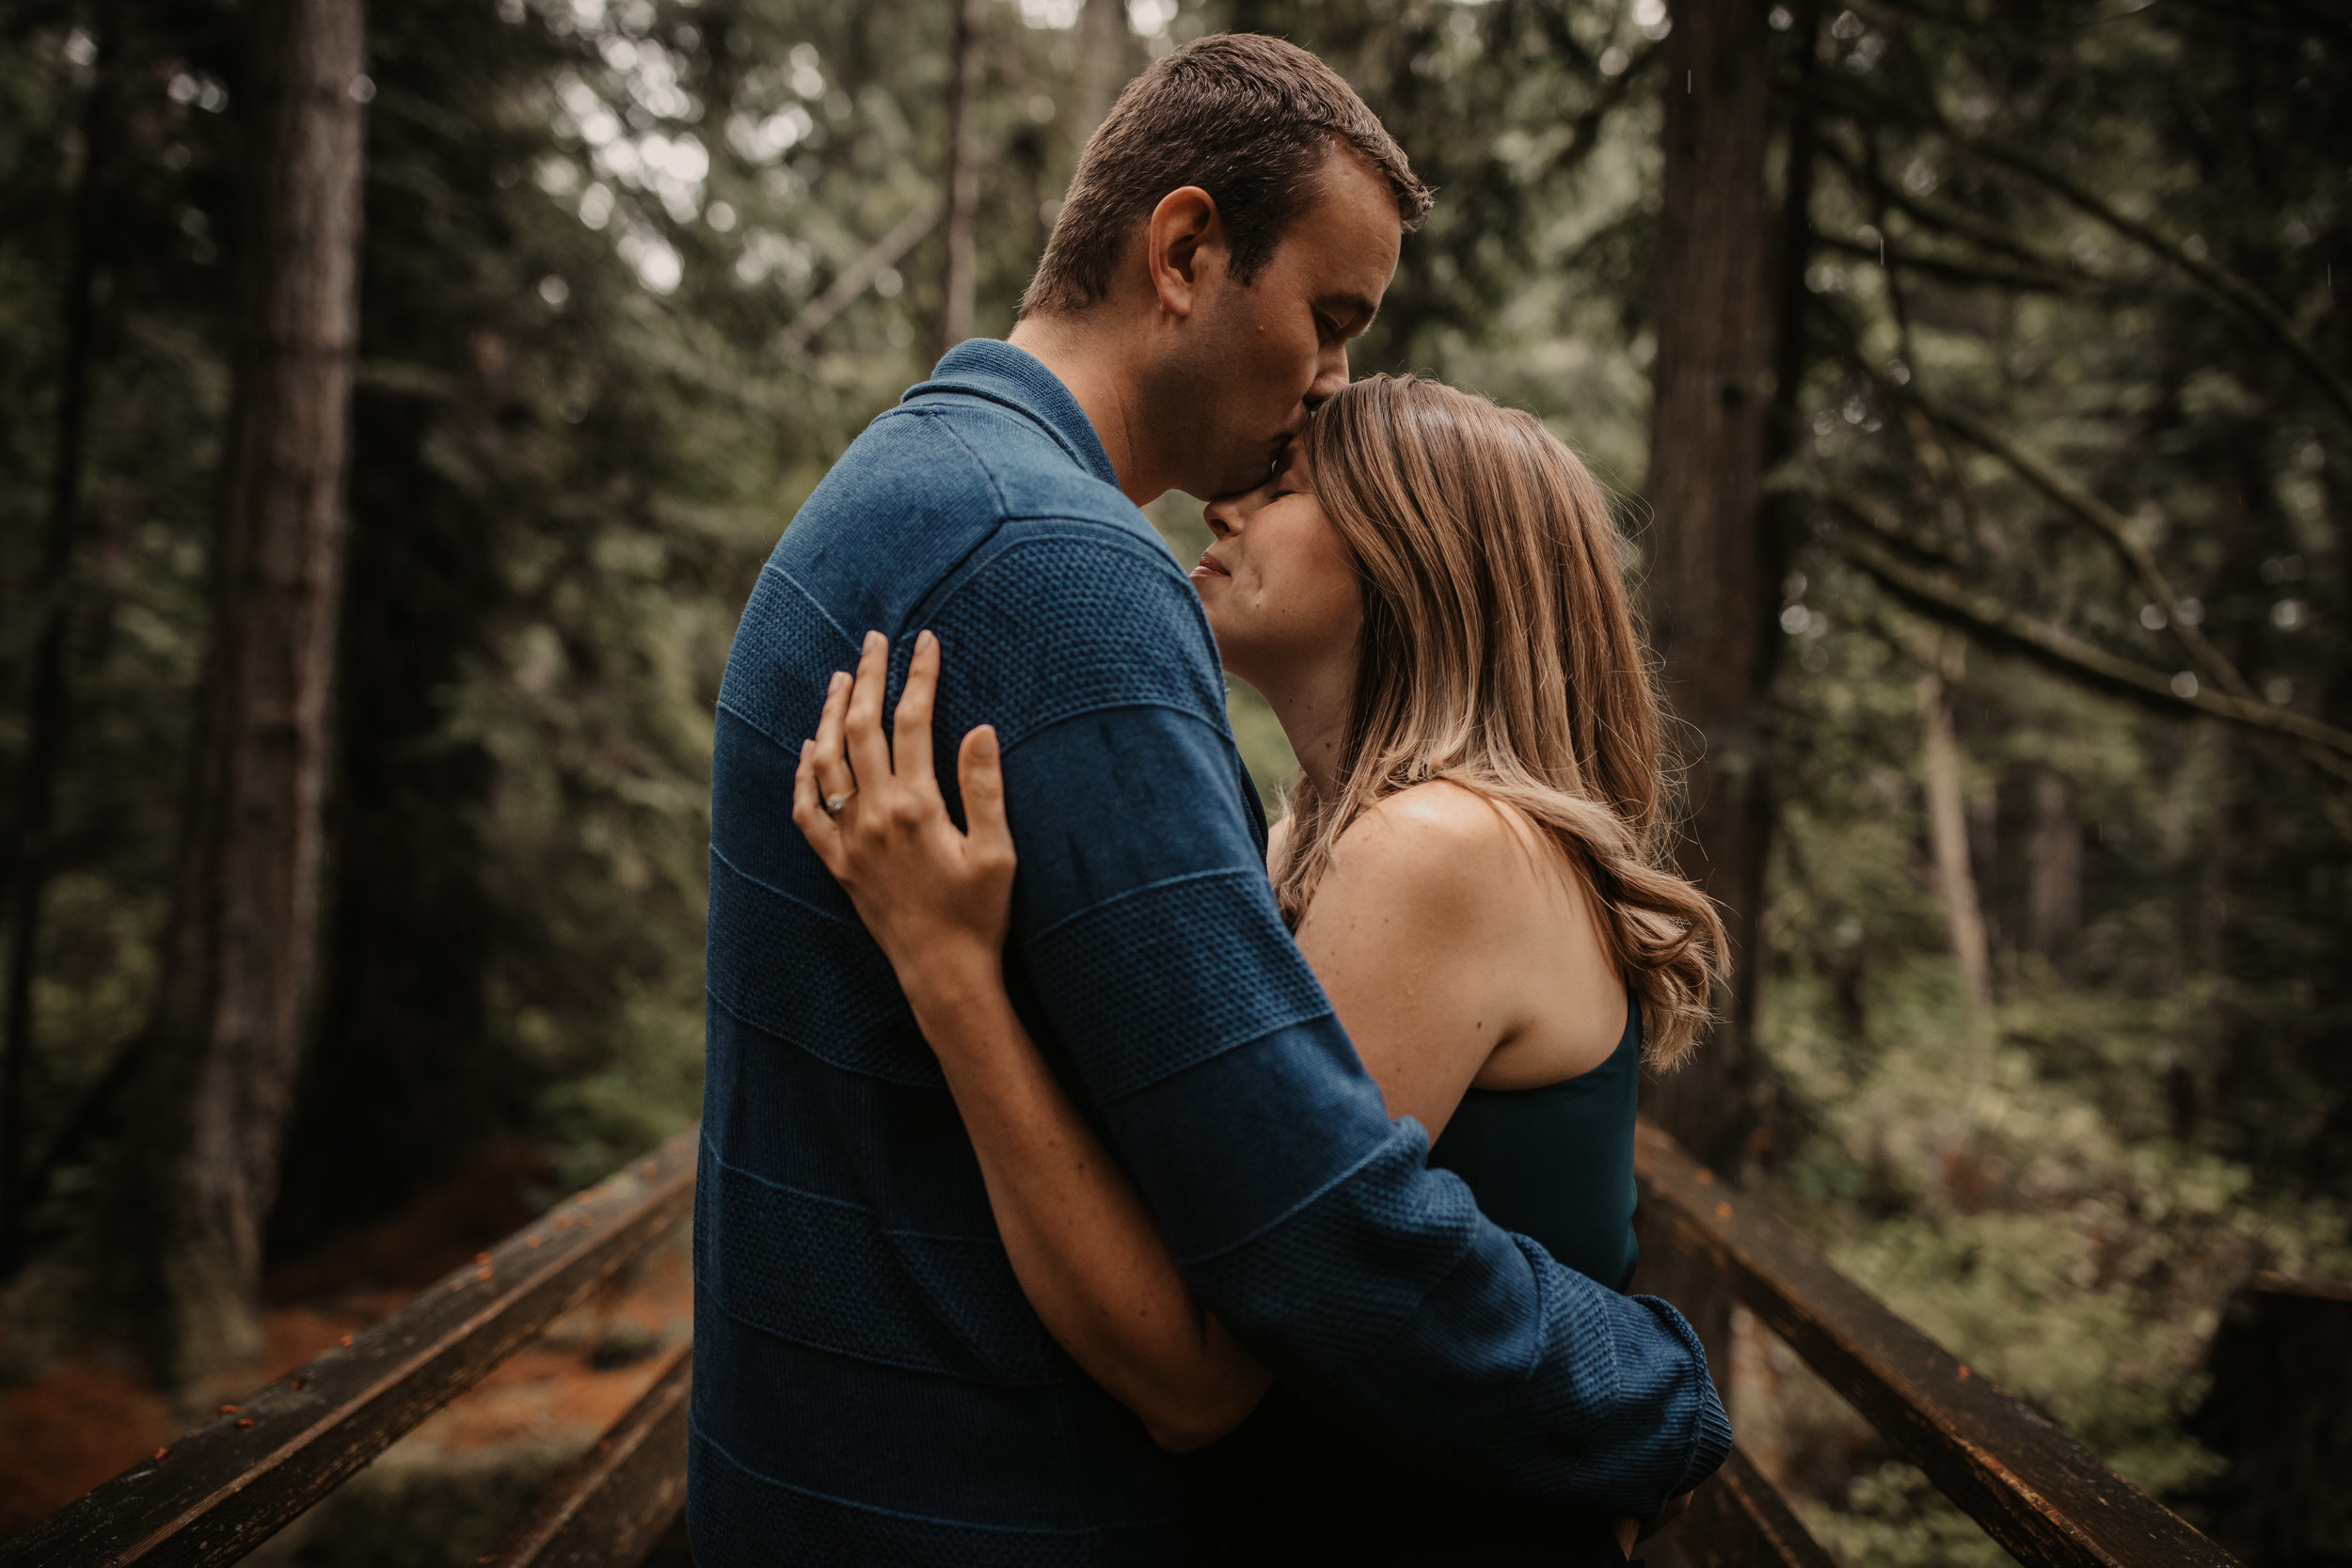 SUNSHINE COAST FOREST & BEACH ENGAGEMENT PHOTOS — Ashley & Antoine — JENNIFER PICARD PHOTOGRAPHY221.JPG